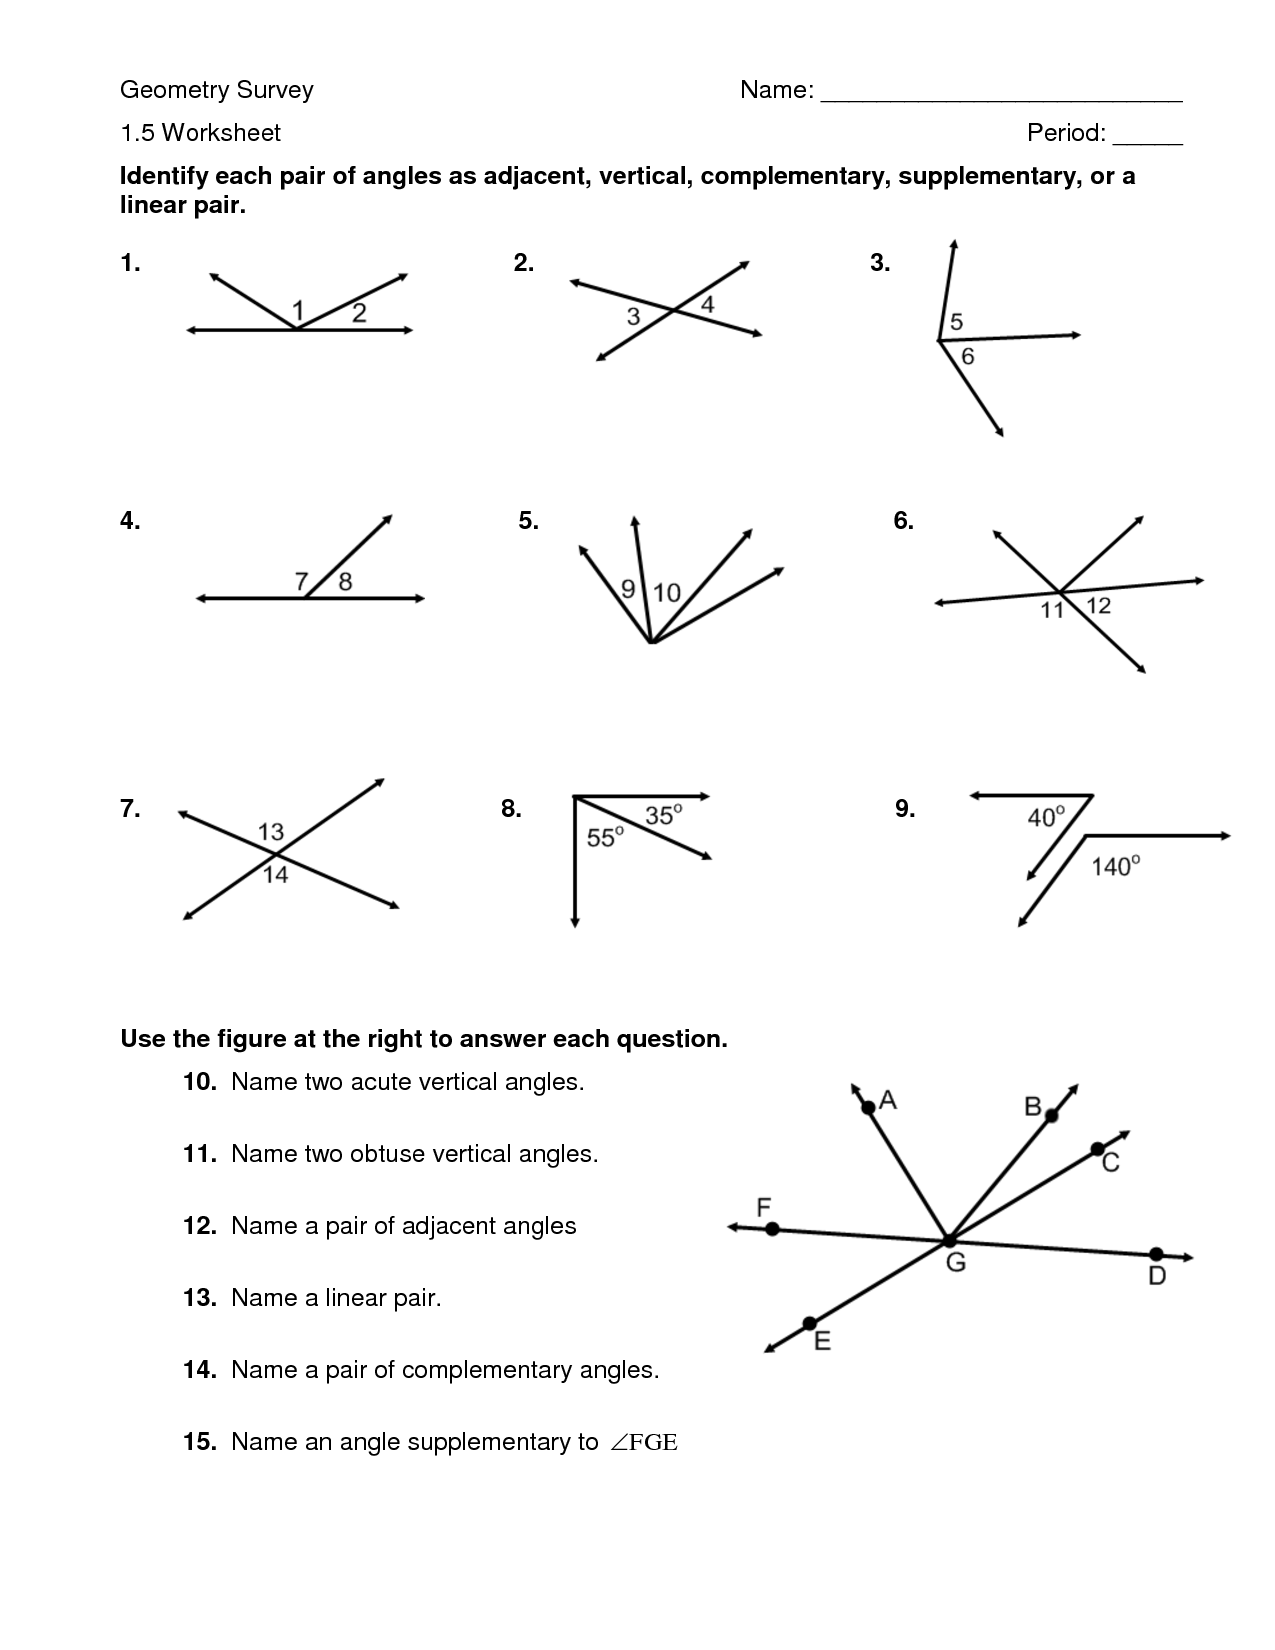 plementary Vs Supplementary Math  plements Of Congruent Angles besides Free  plementary And Supplementary Angles Worksheets Den Grade 4 besides  further Difference Between  plementary And Supplementary Angles Math in addition Best  plementary Angles   ideas and images on Bing   Find what you also Angles Worksheets   Free    monCoreSheets also geometry  plementary supplementary angles worksheet by Eric additionally plementary Angles Worksheet   STEM Sheets besides  furthermore  together with Free  plementary and Supplementary Angles Worksheets   Home Den additionally plementary Supplementary Vertical Angles Worksheet besides plementary Supplementary Vertical Angles Worksheet   plementary as well Supplementary Angle Worksheet Math  plementary And Supplementary moreover  besides Angles Worksheets   Free    monCoreSheets. on complementary and supplementary angles worksheet